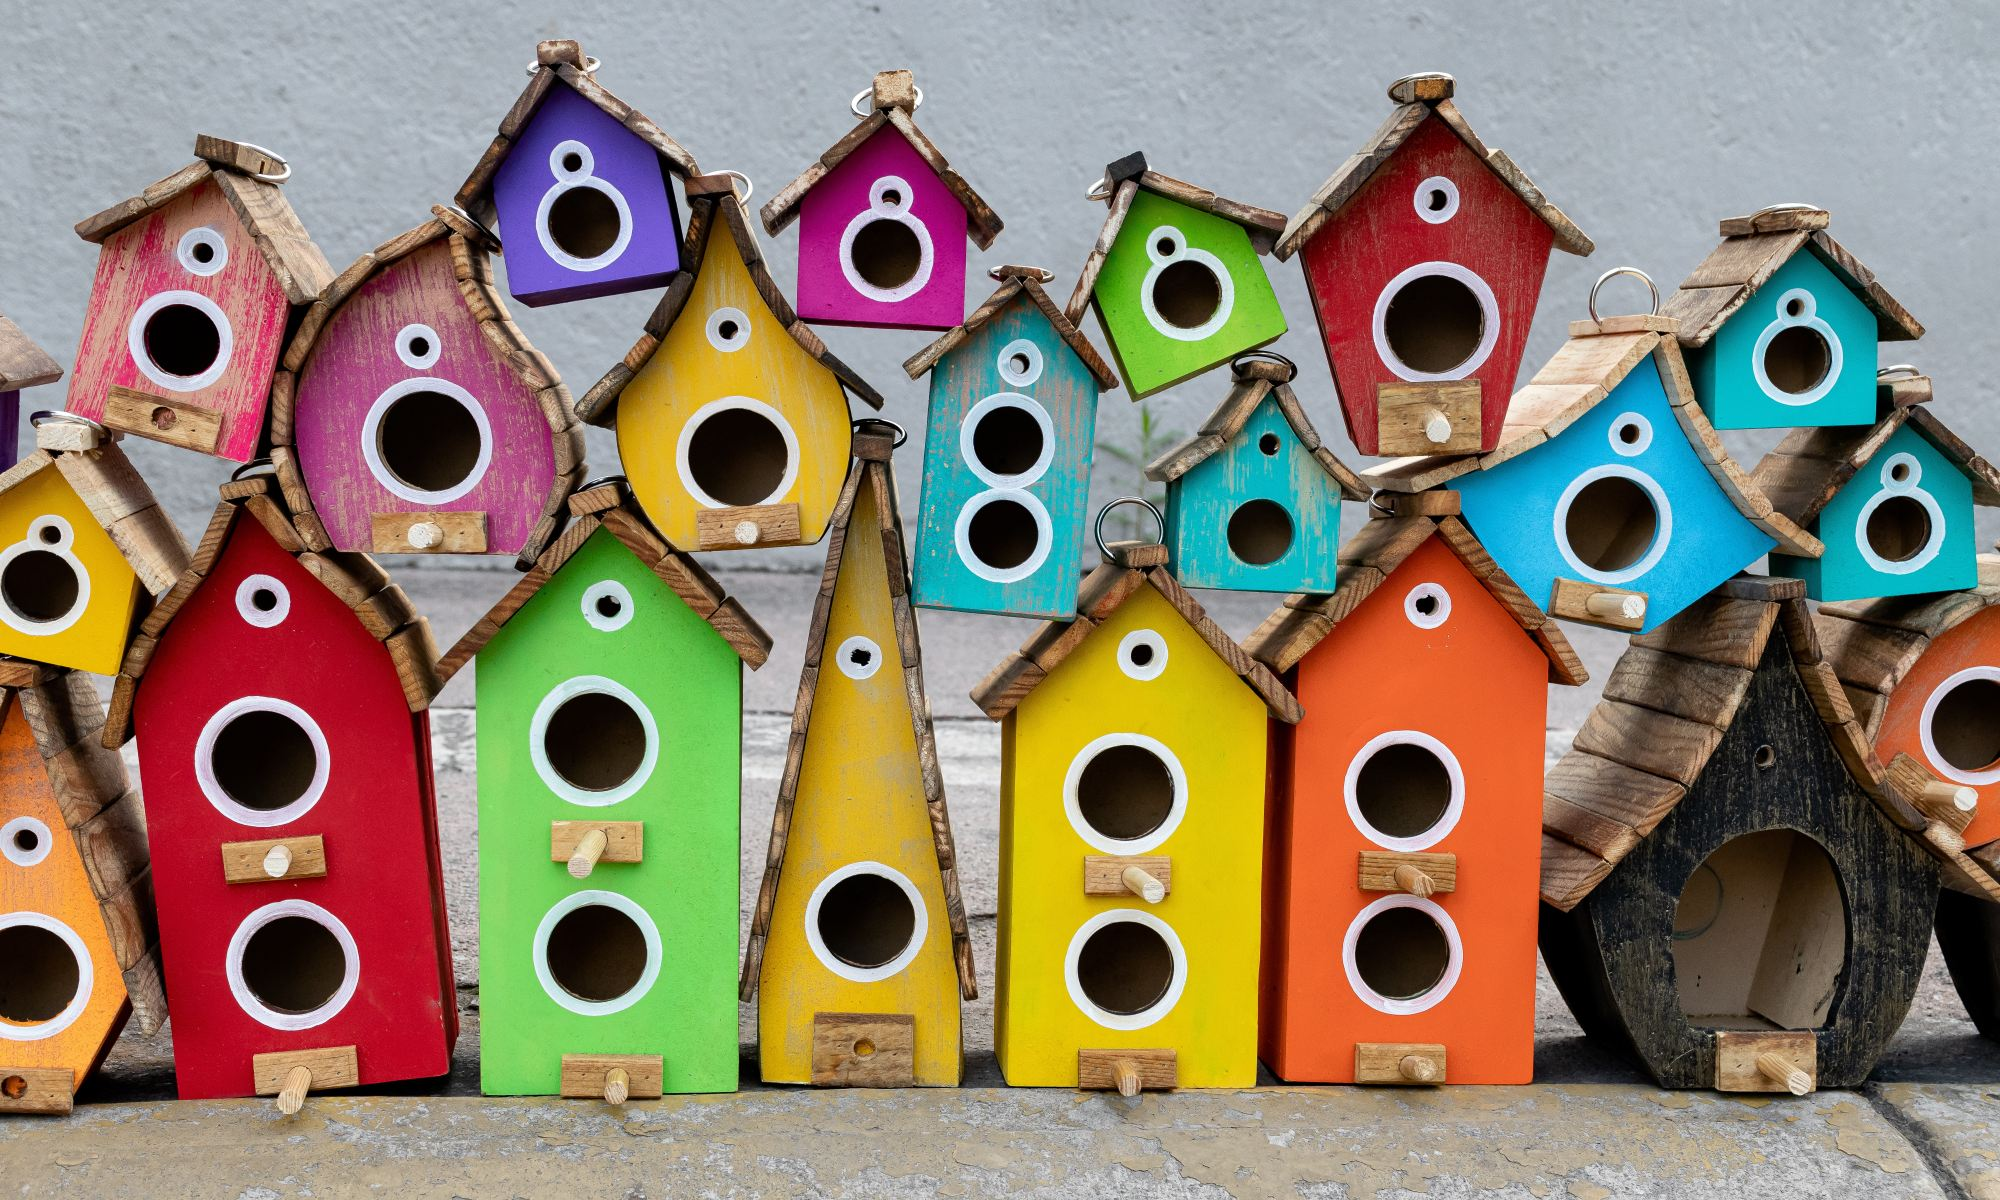 Colorful wooden birdhouses